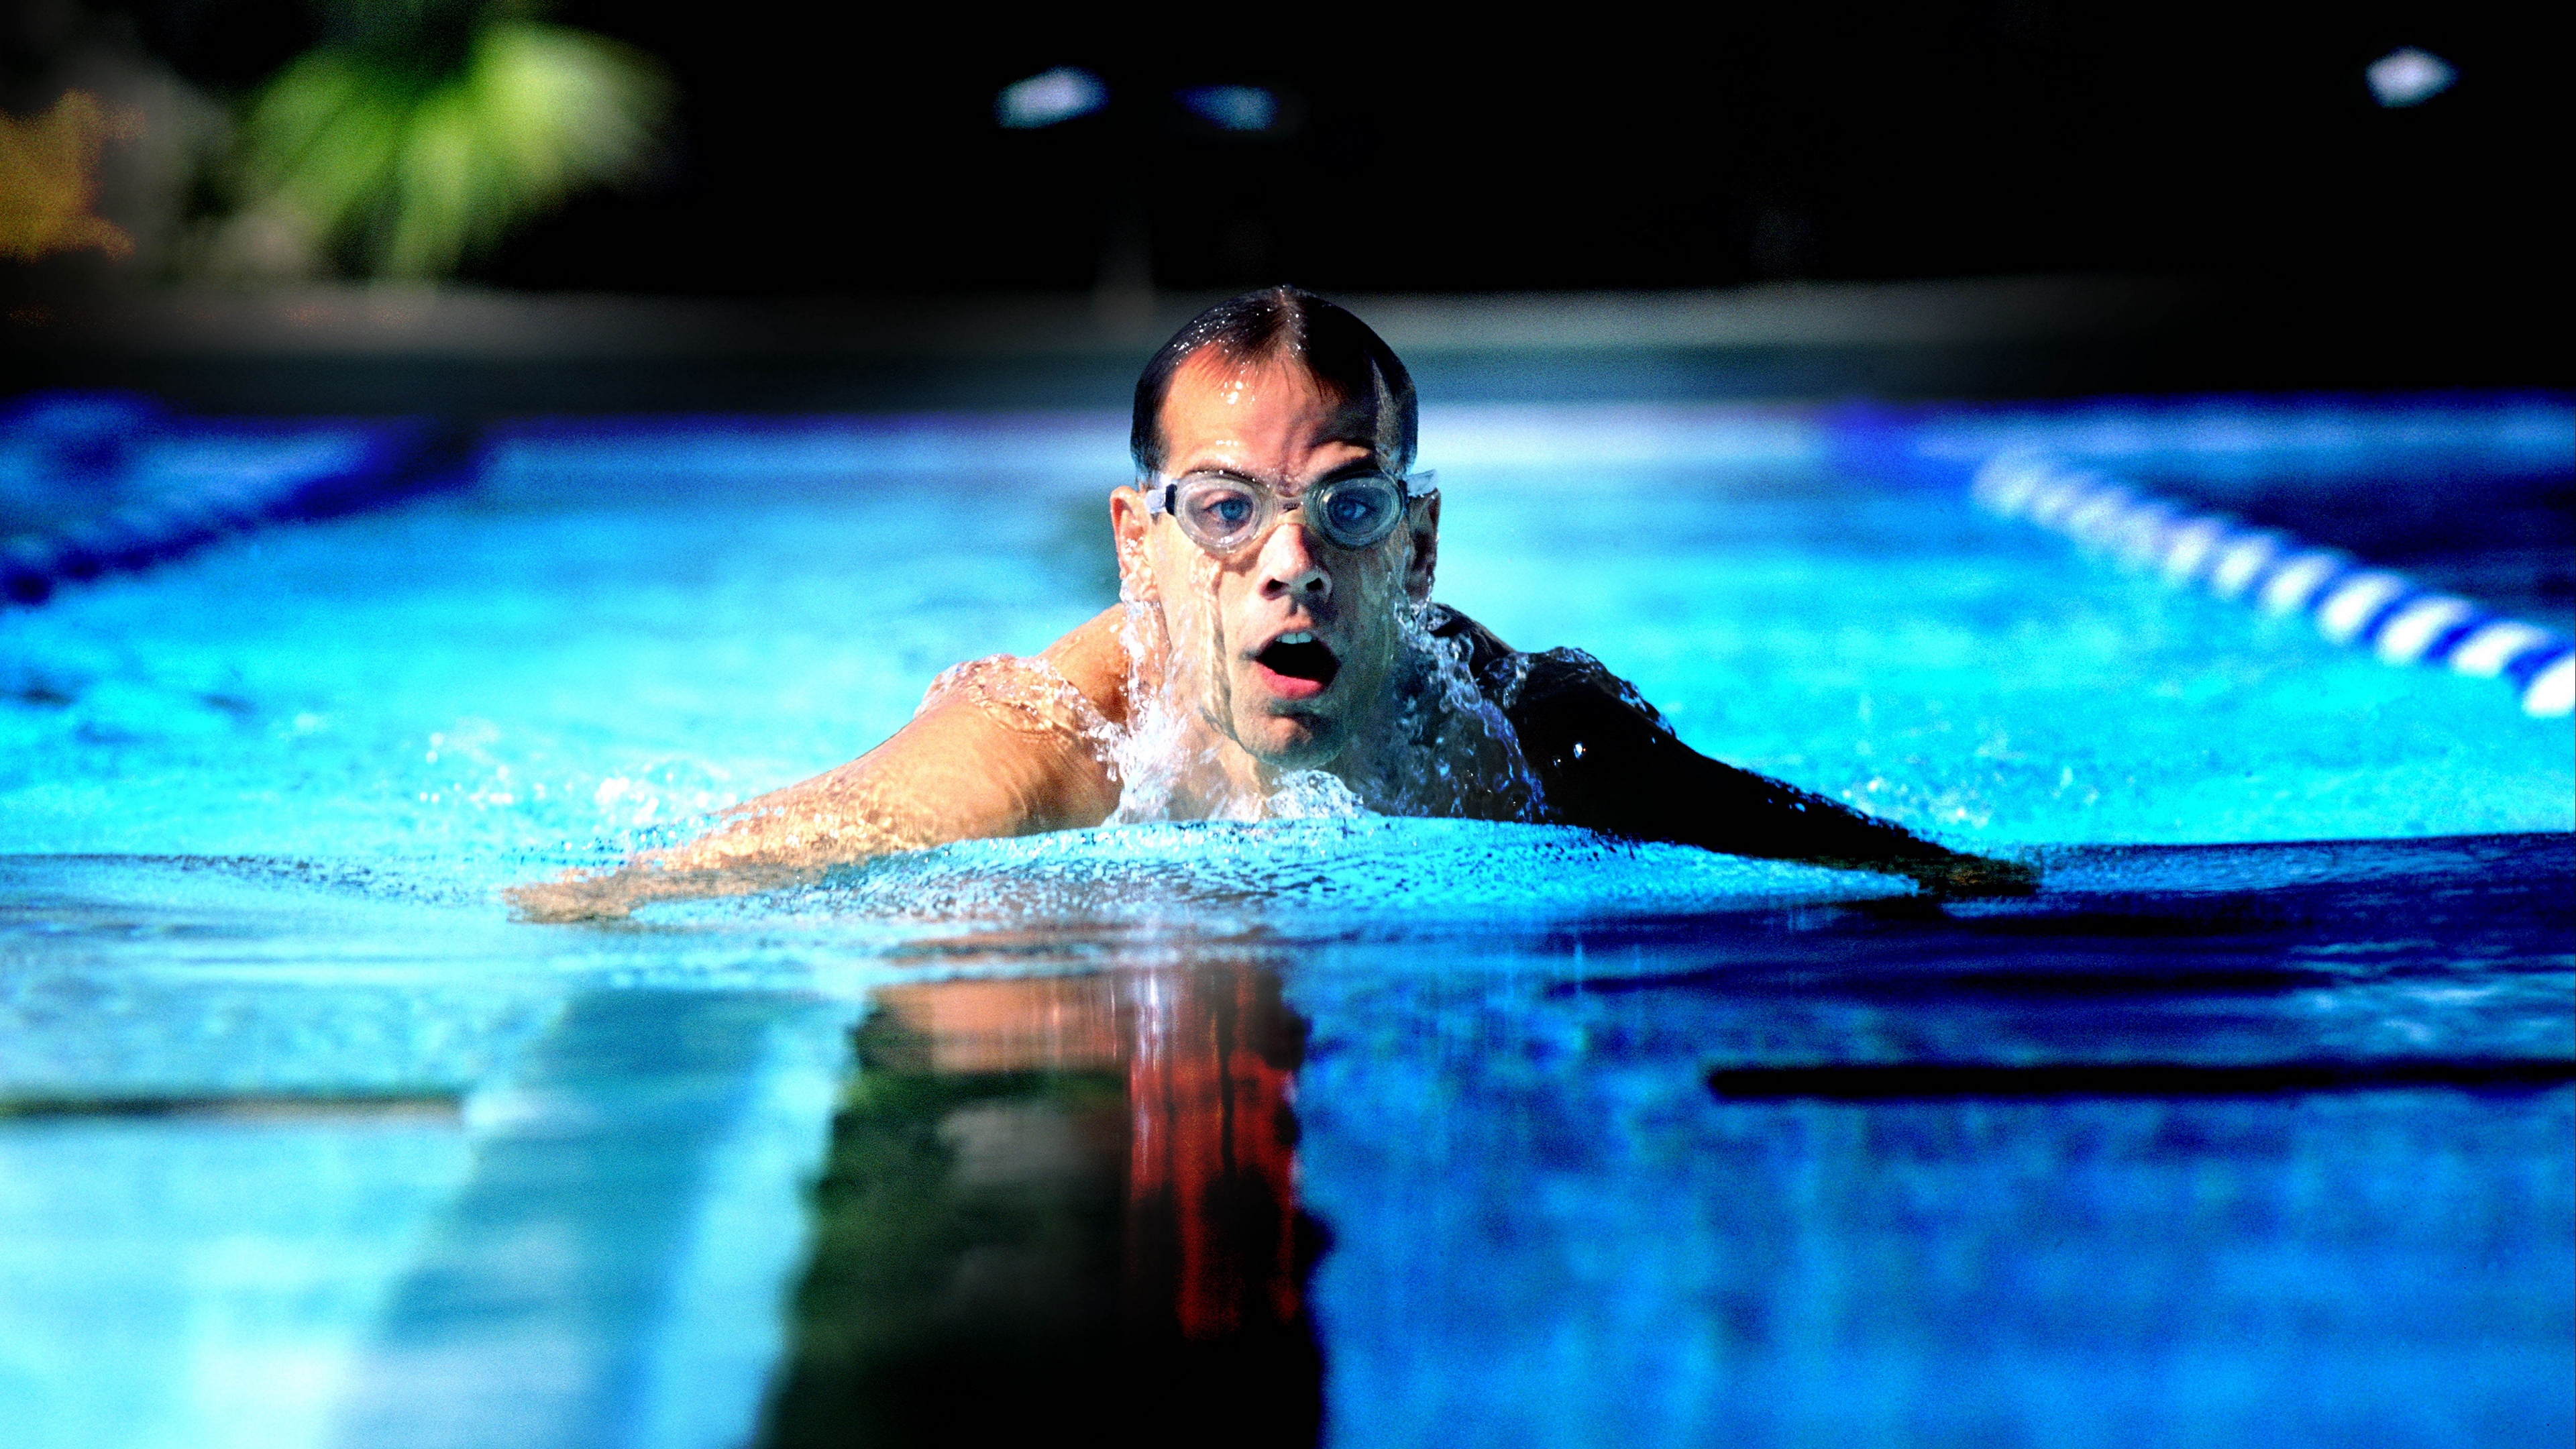 man swimmer swimming pool sports spectacles 4k 1540060971 - man, swimmer, swimming pool, sports, spectacles 4k - swimming pool, swimmer, Man